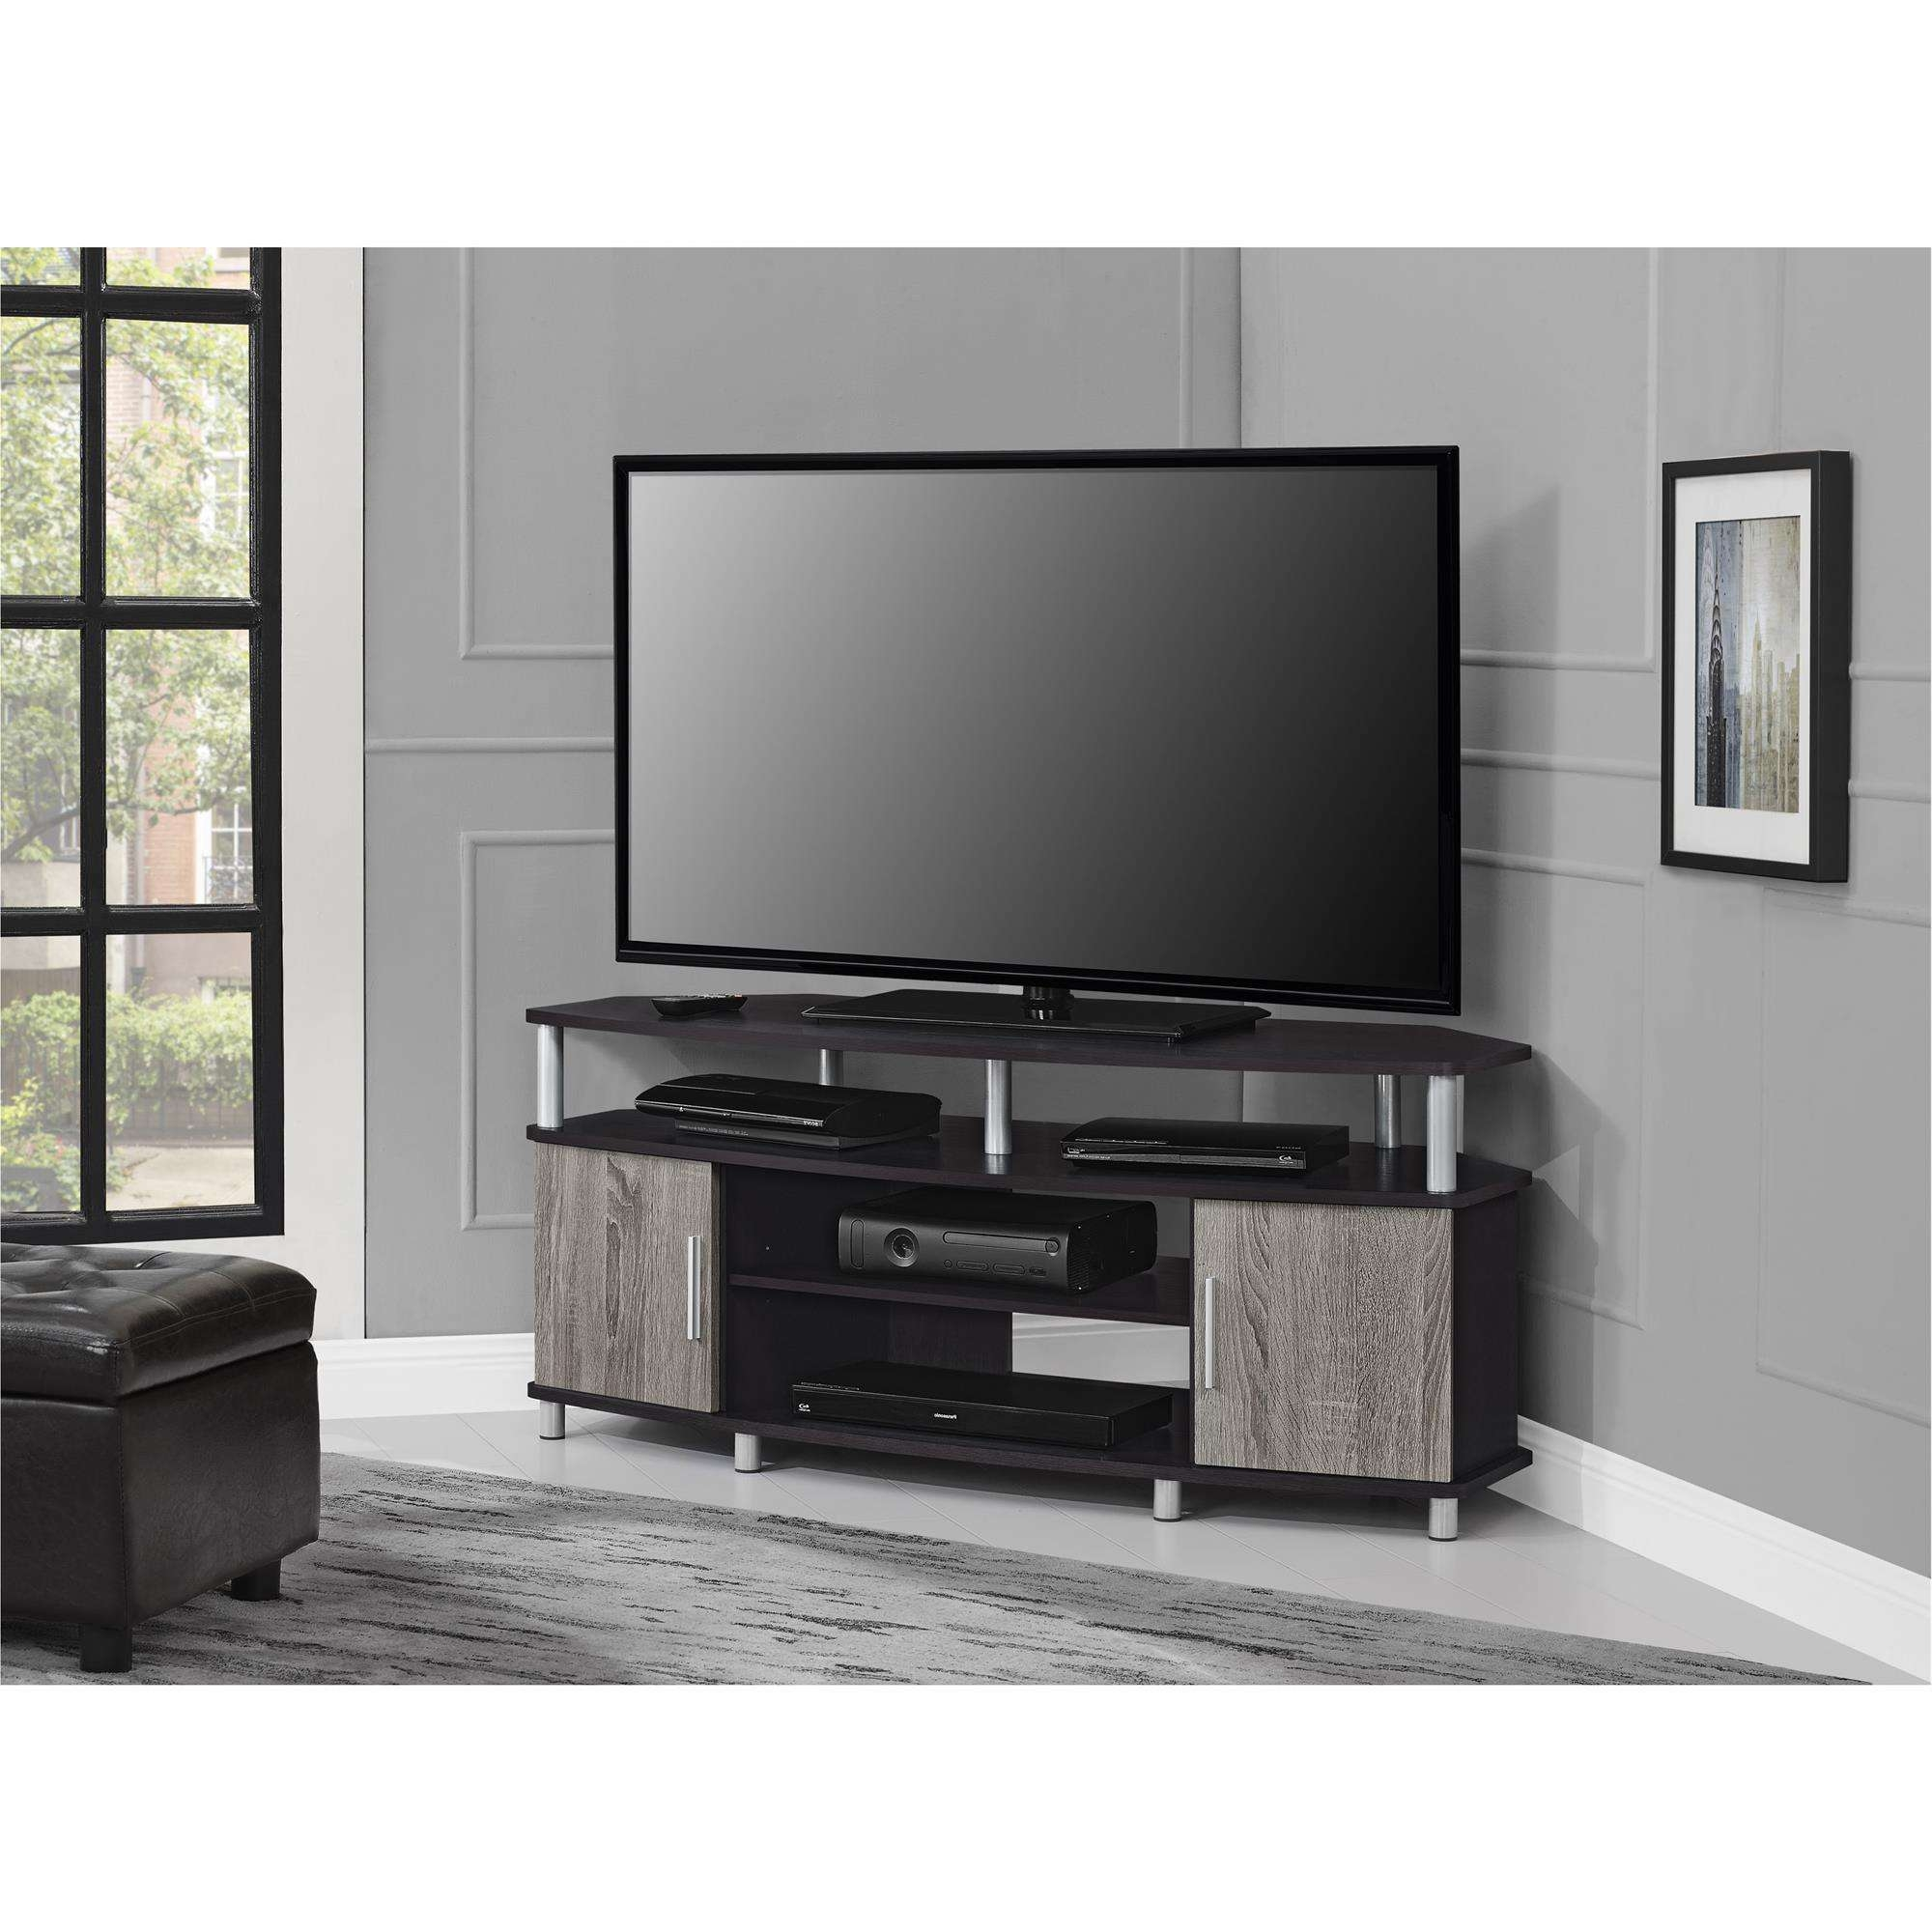 "Ameriwood Home Carson Corner Tv Stand For Tvs Up To 50"" Wide Intended For 50 Inch Corner Tv Cabinets (View 6 of 20)"